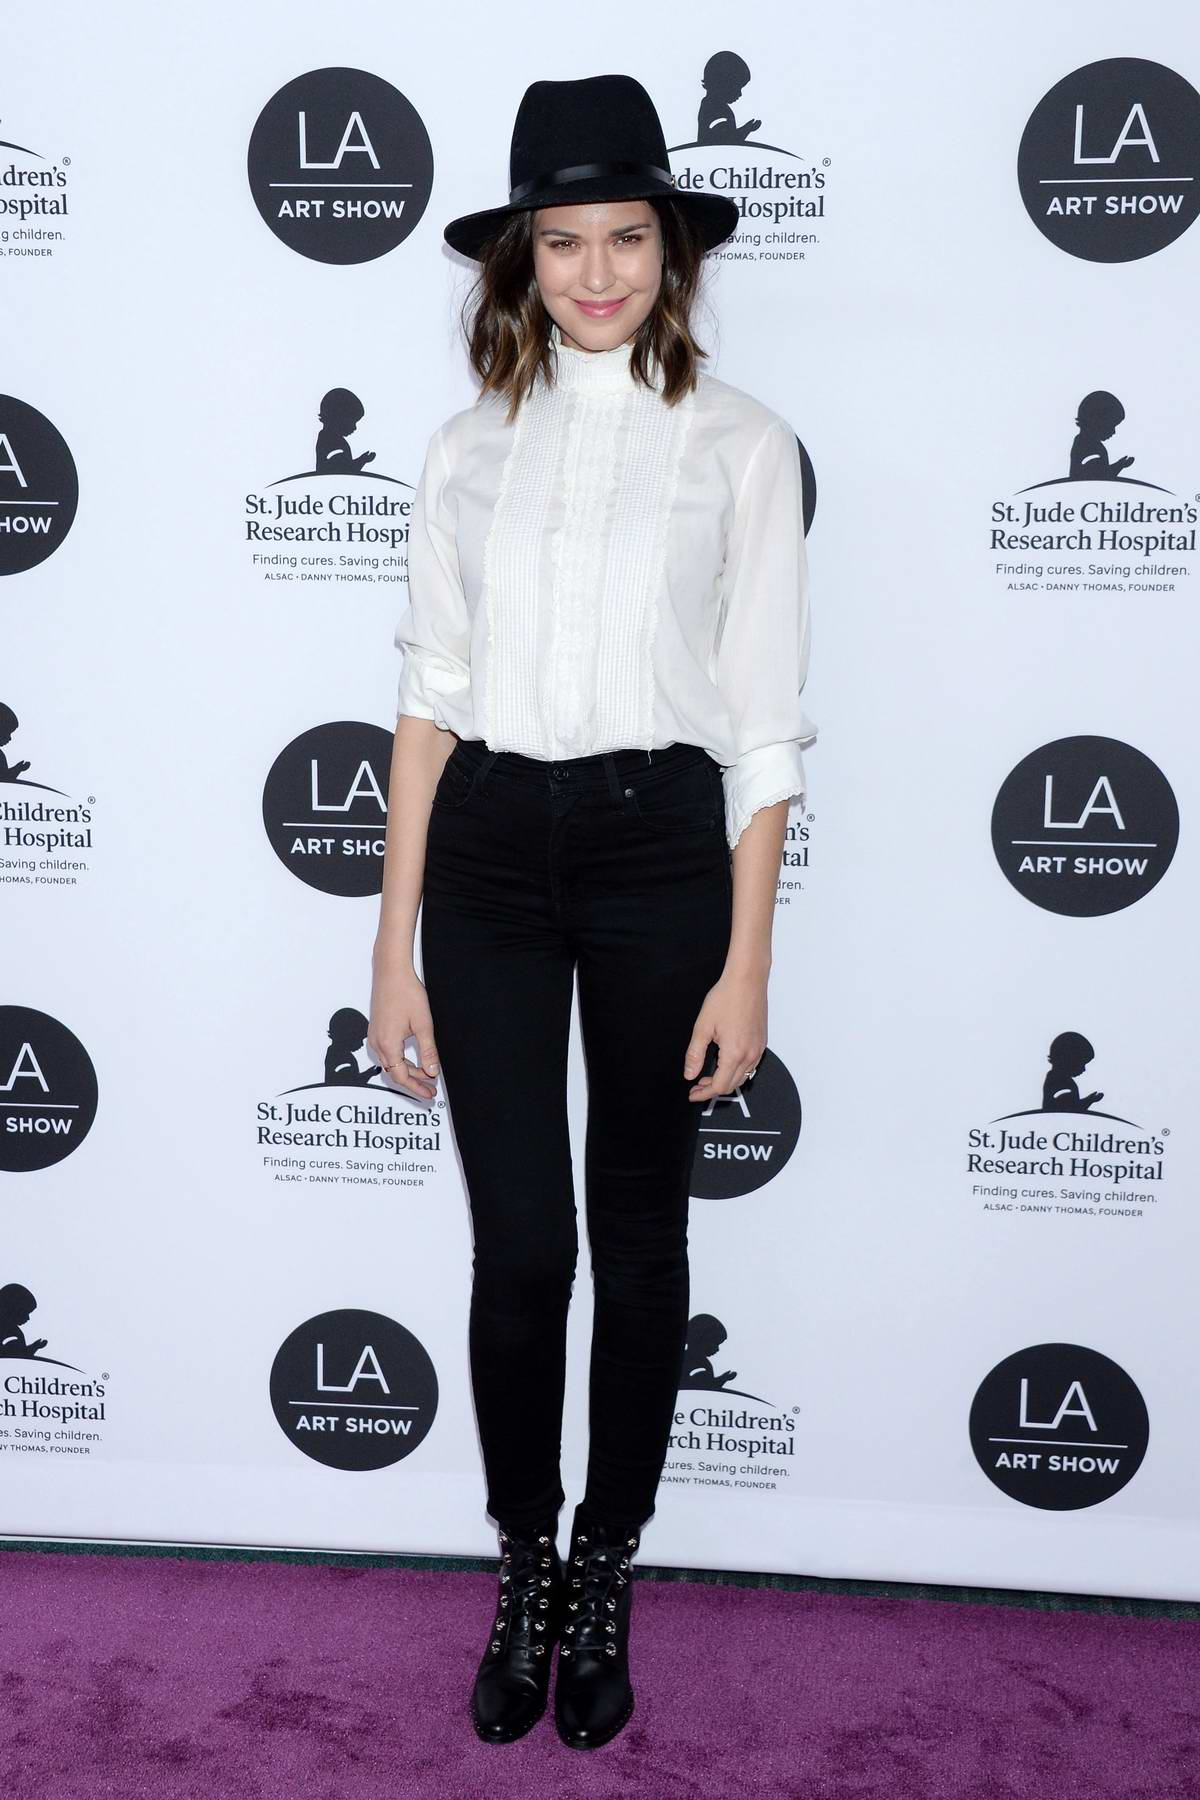 Odette Annable attends the 24th Annual LA Art Show held at The Convention Center in Los Angeles